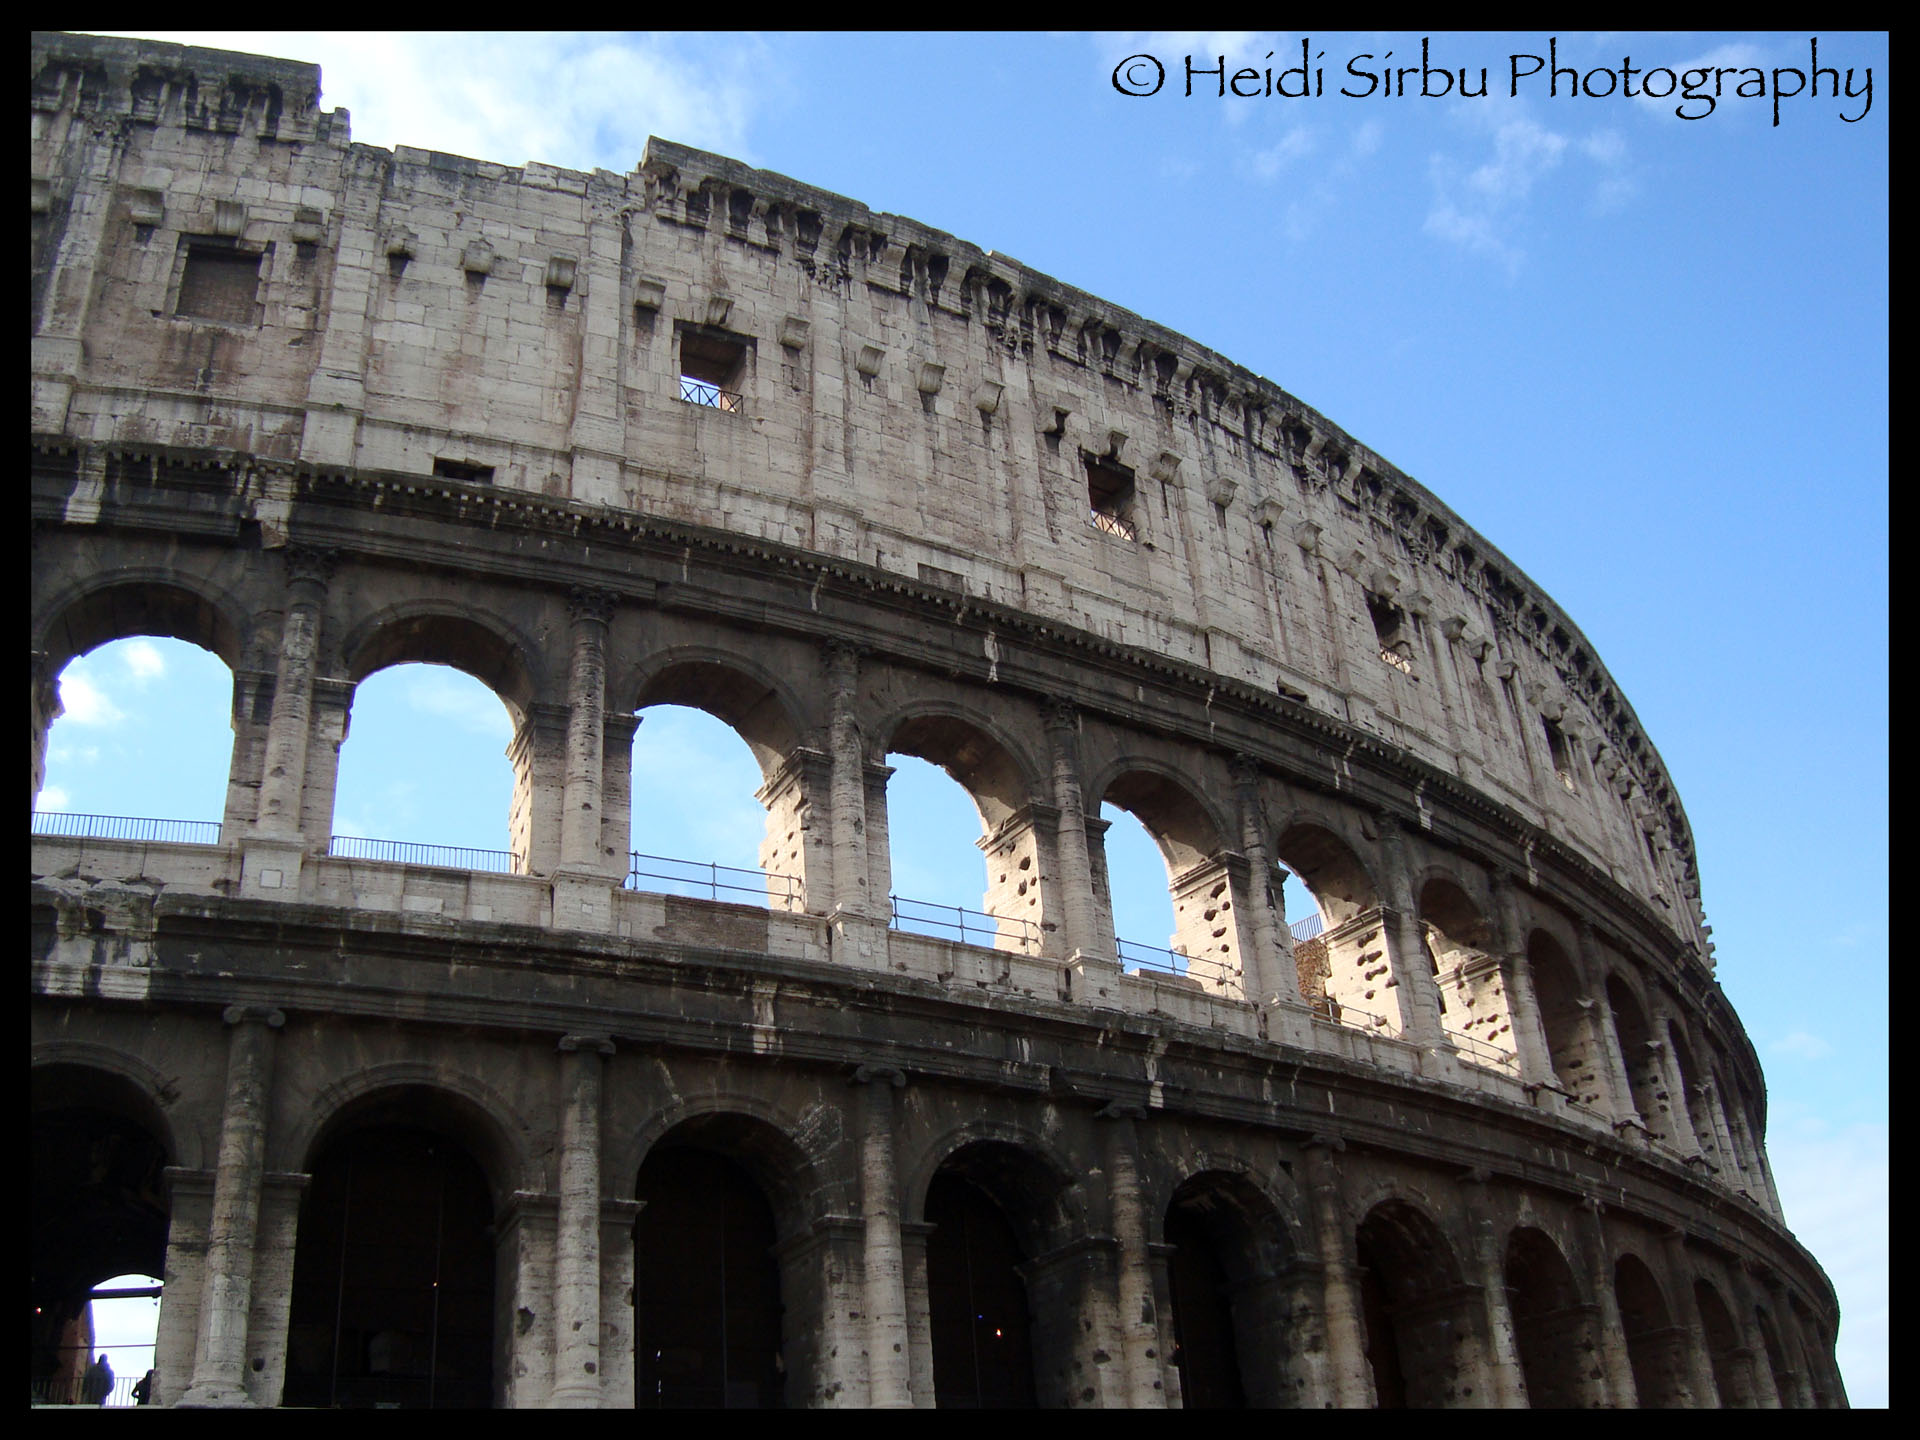 The Colosseum in Rome: one of the most recognizable pieces of architecture in the world!